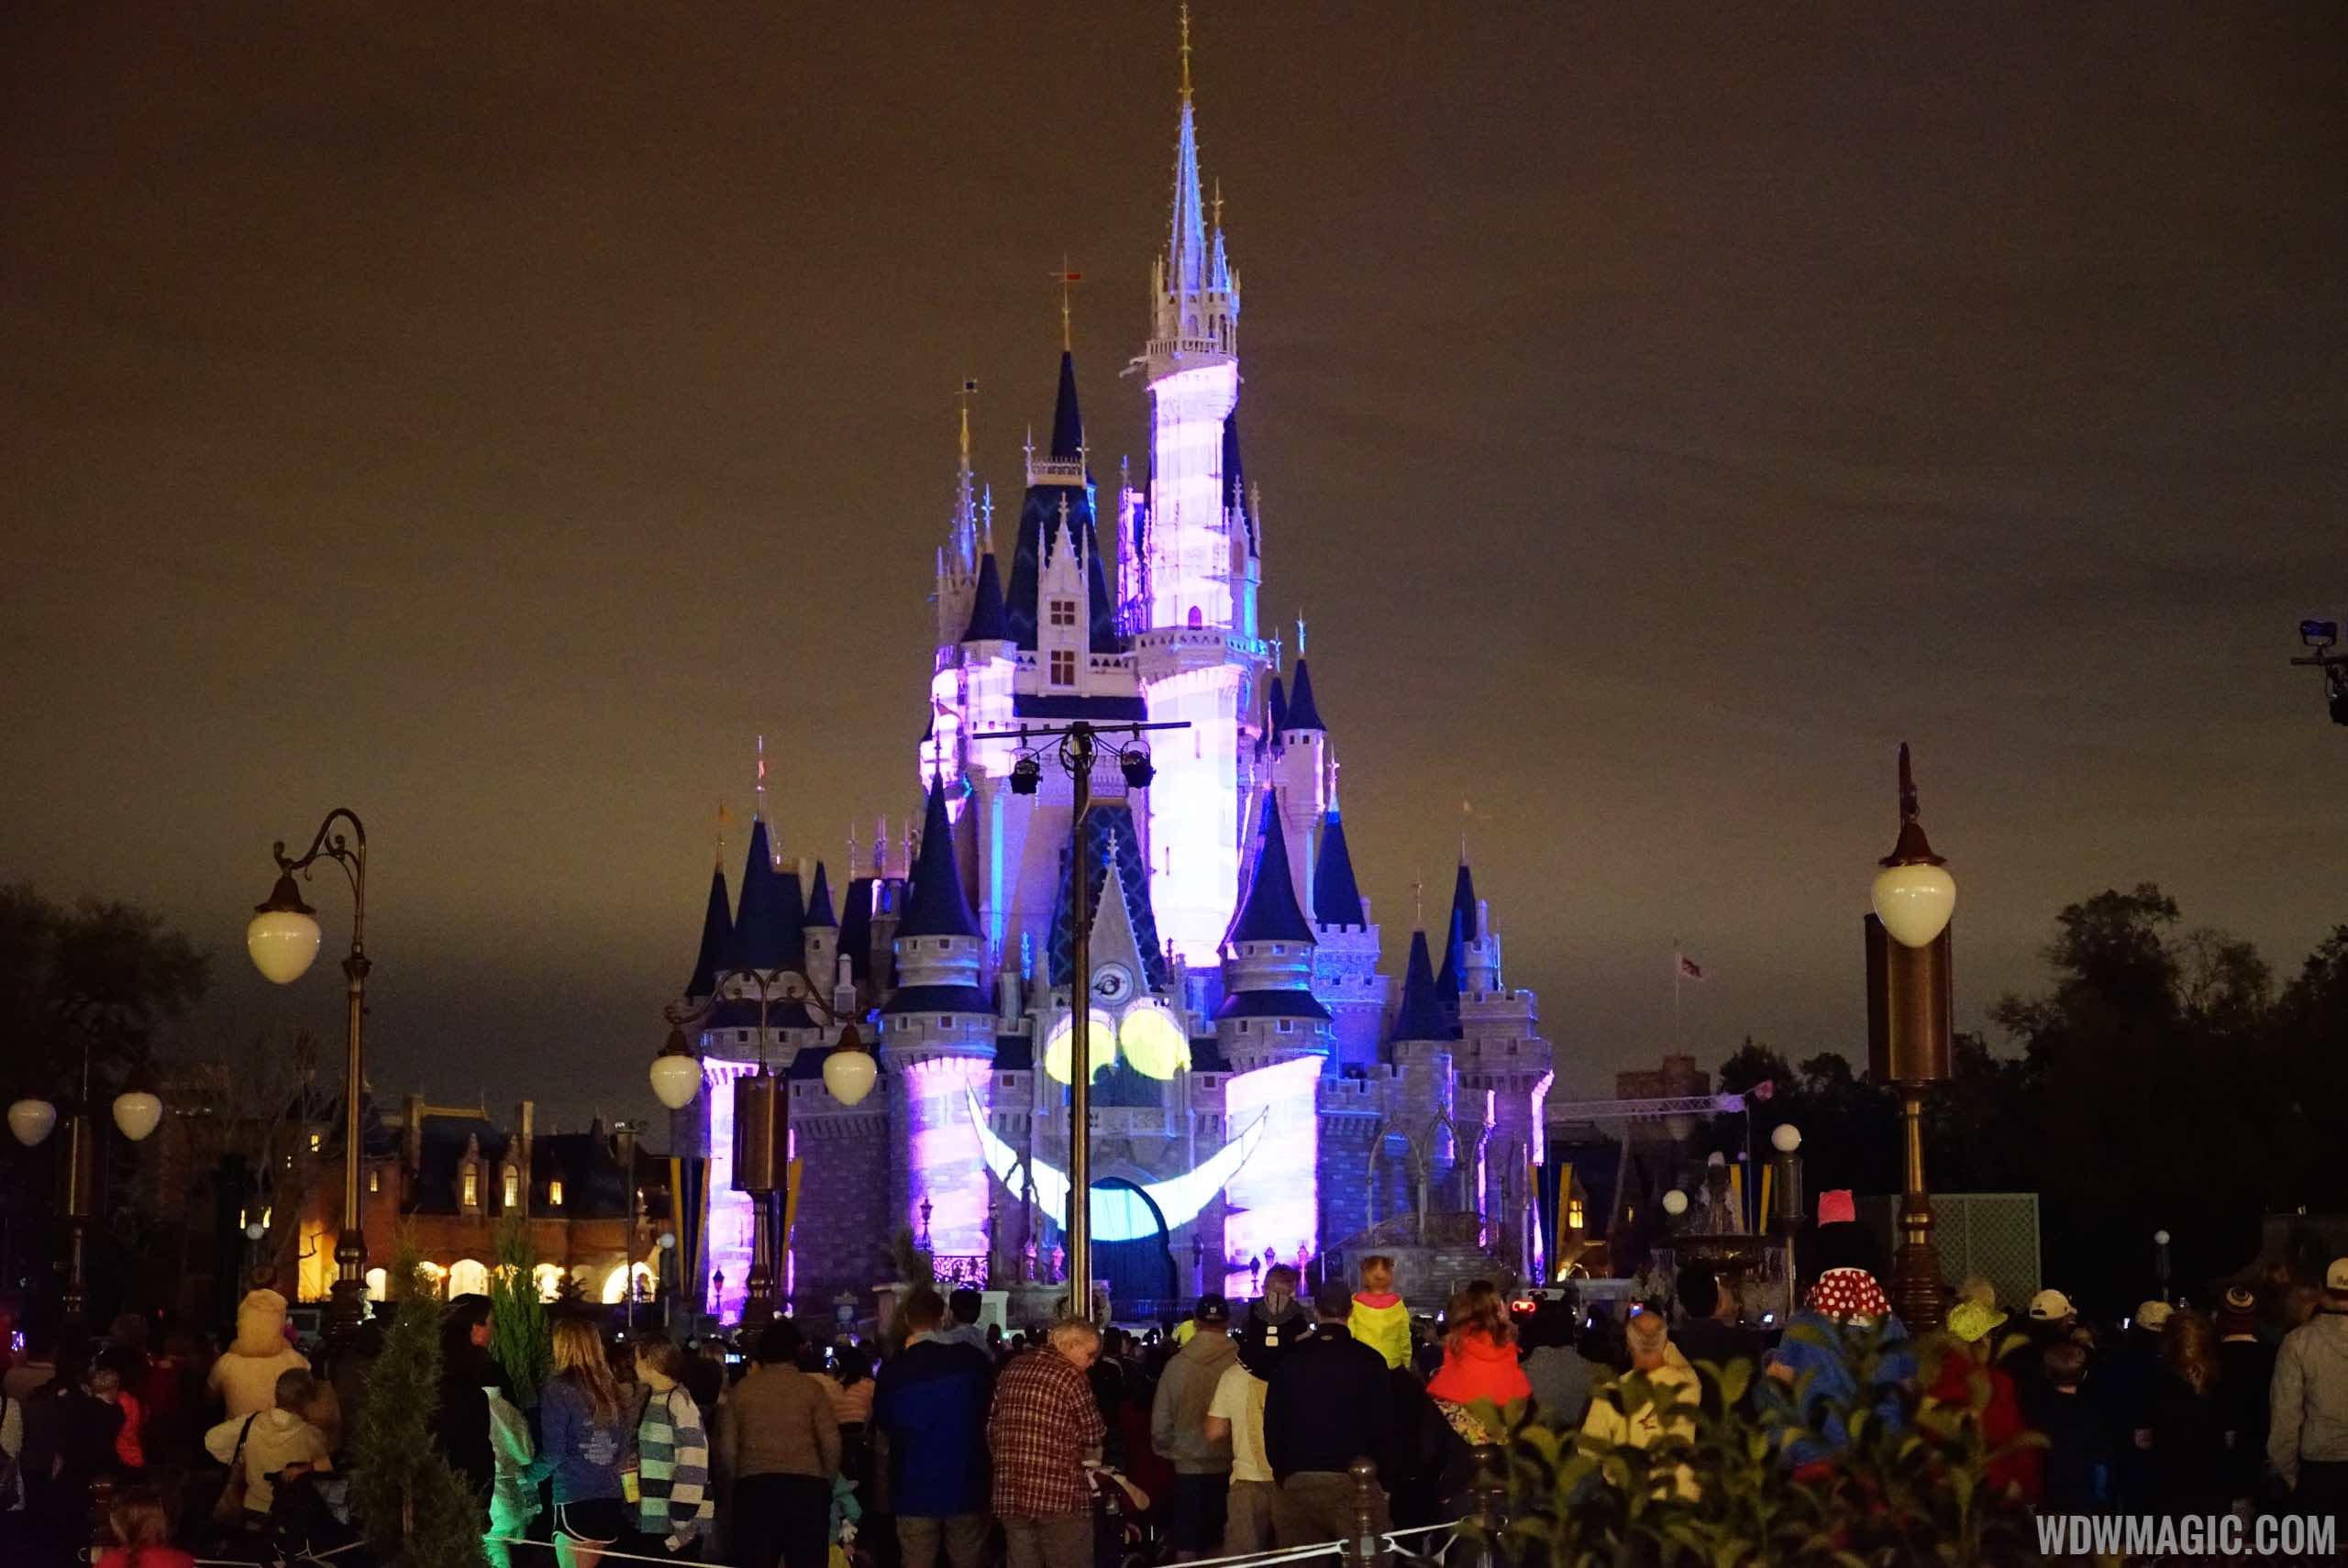 Lighting poles blocking the castle view